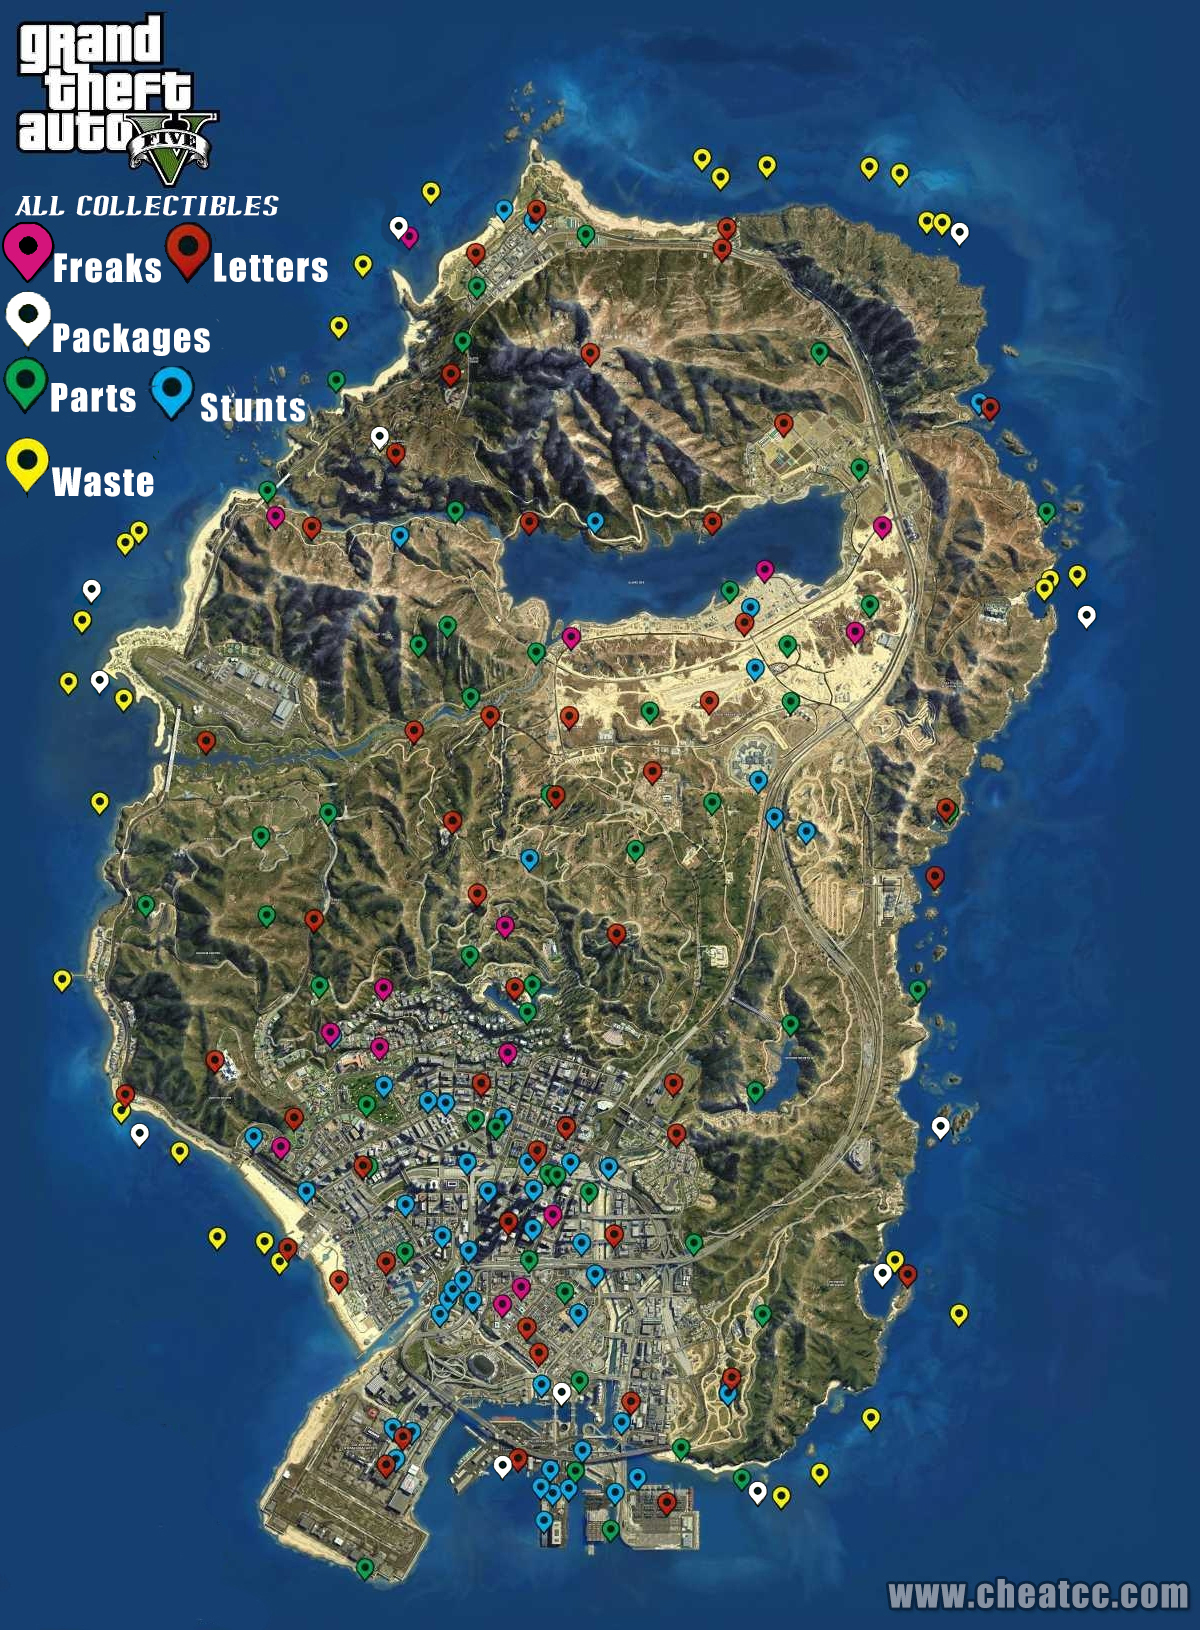 GTA 5 Official: Gameplay Tips, Tricks, Spoilers and Cheats